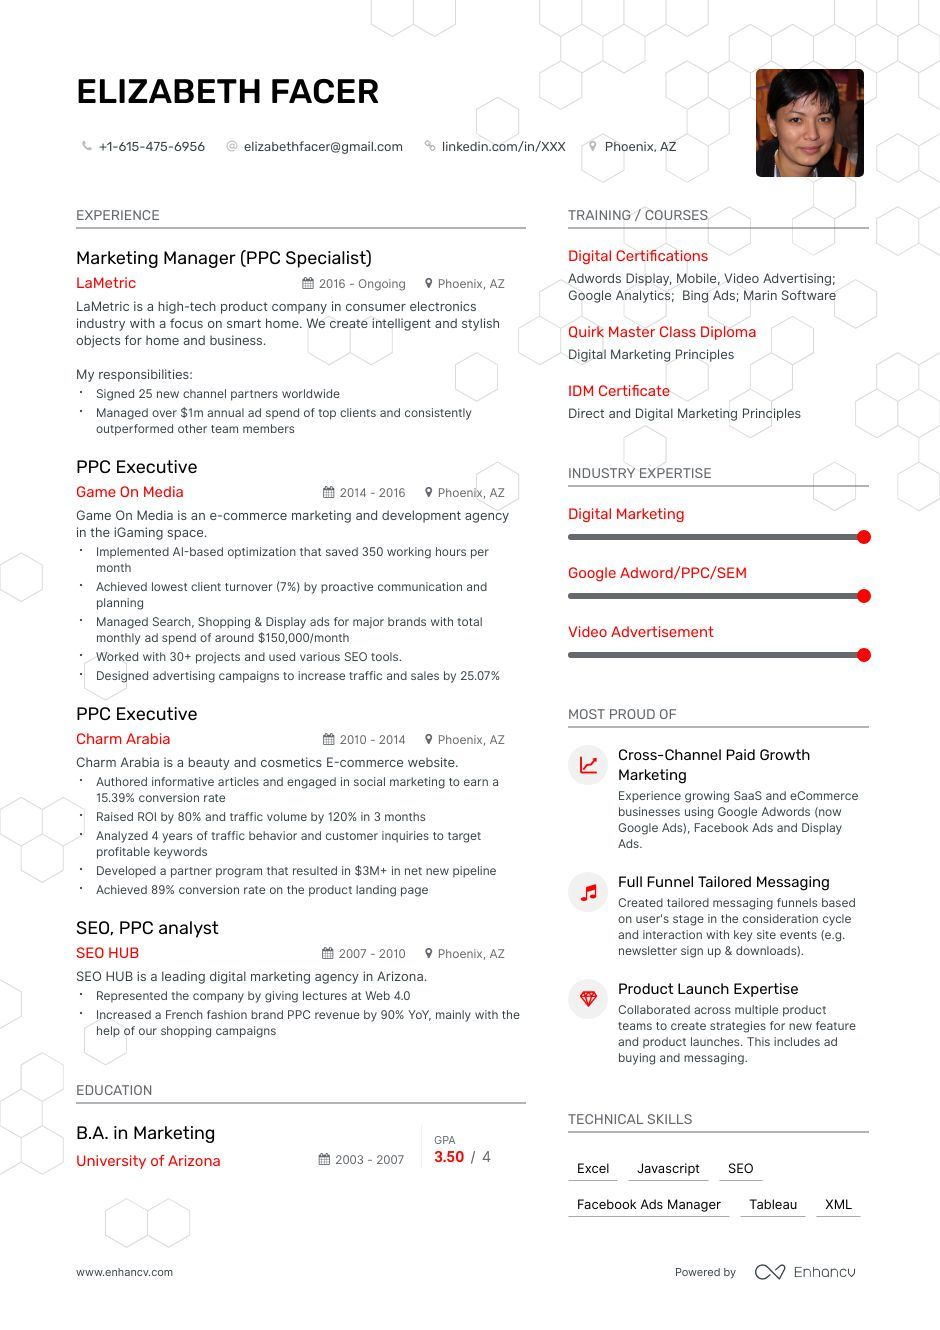 PPC Specialist resume examples Pro tips featured